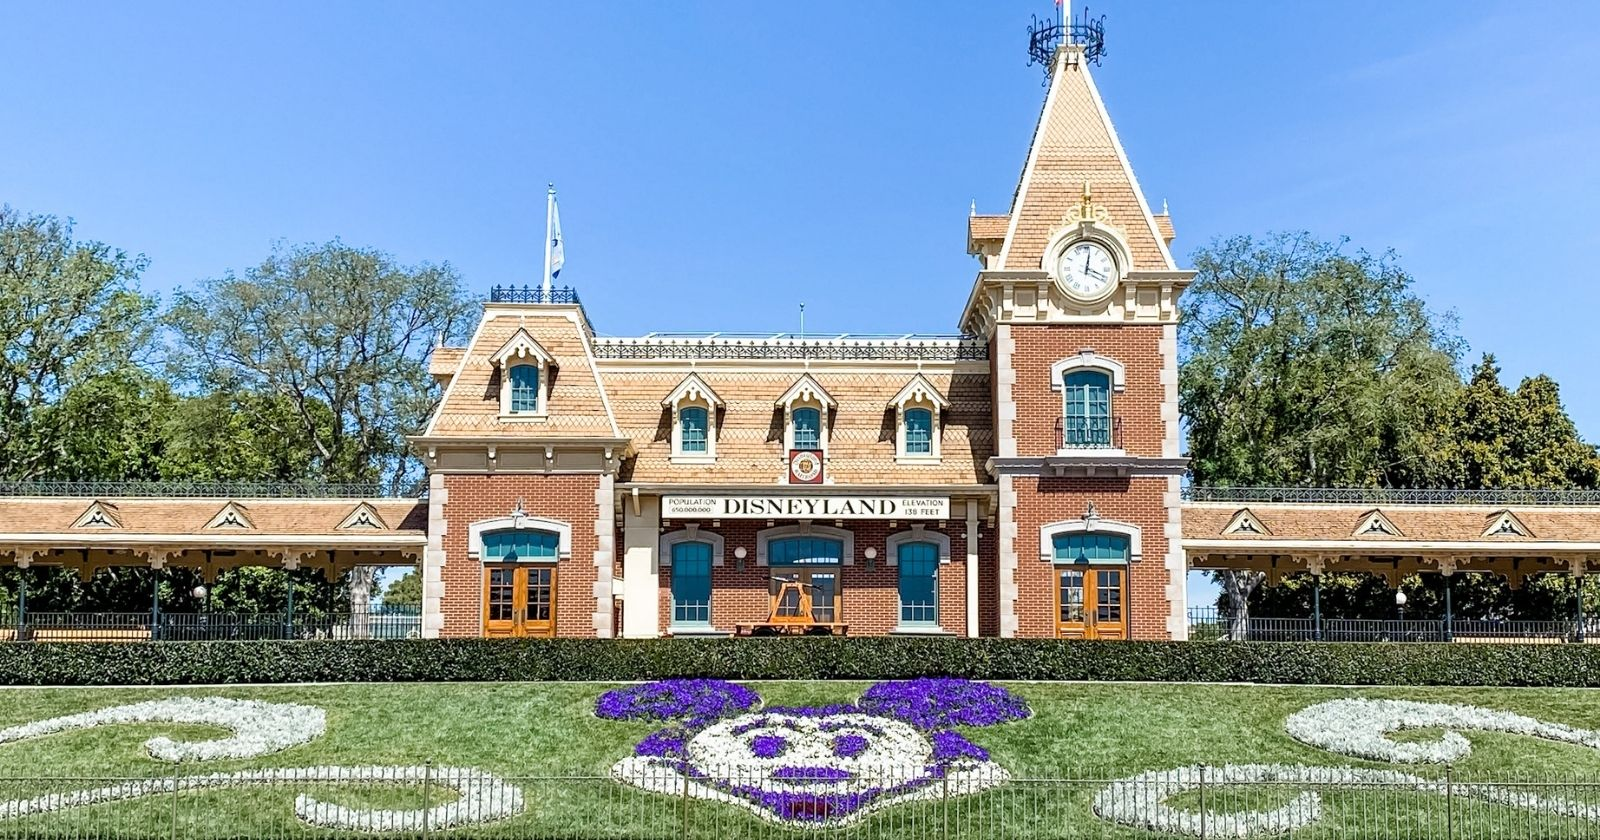 disneyland railroad at park entrance with mickey head floral design in front